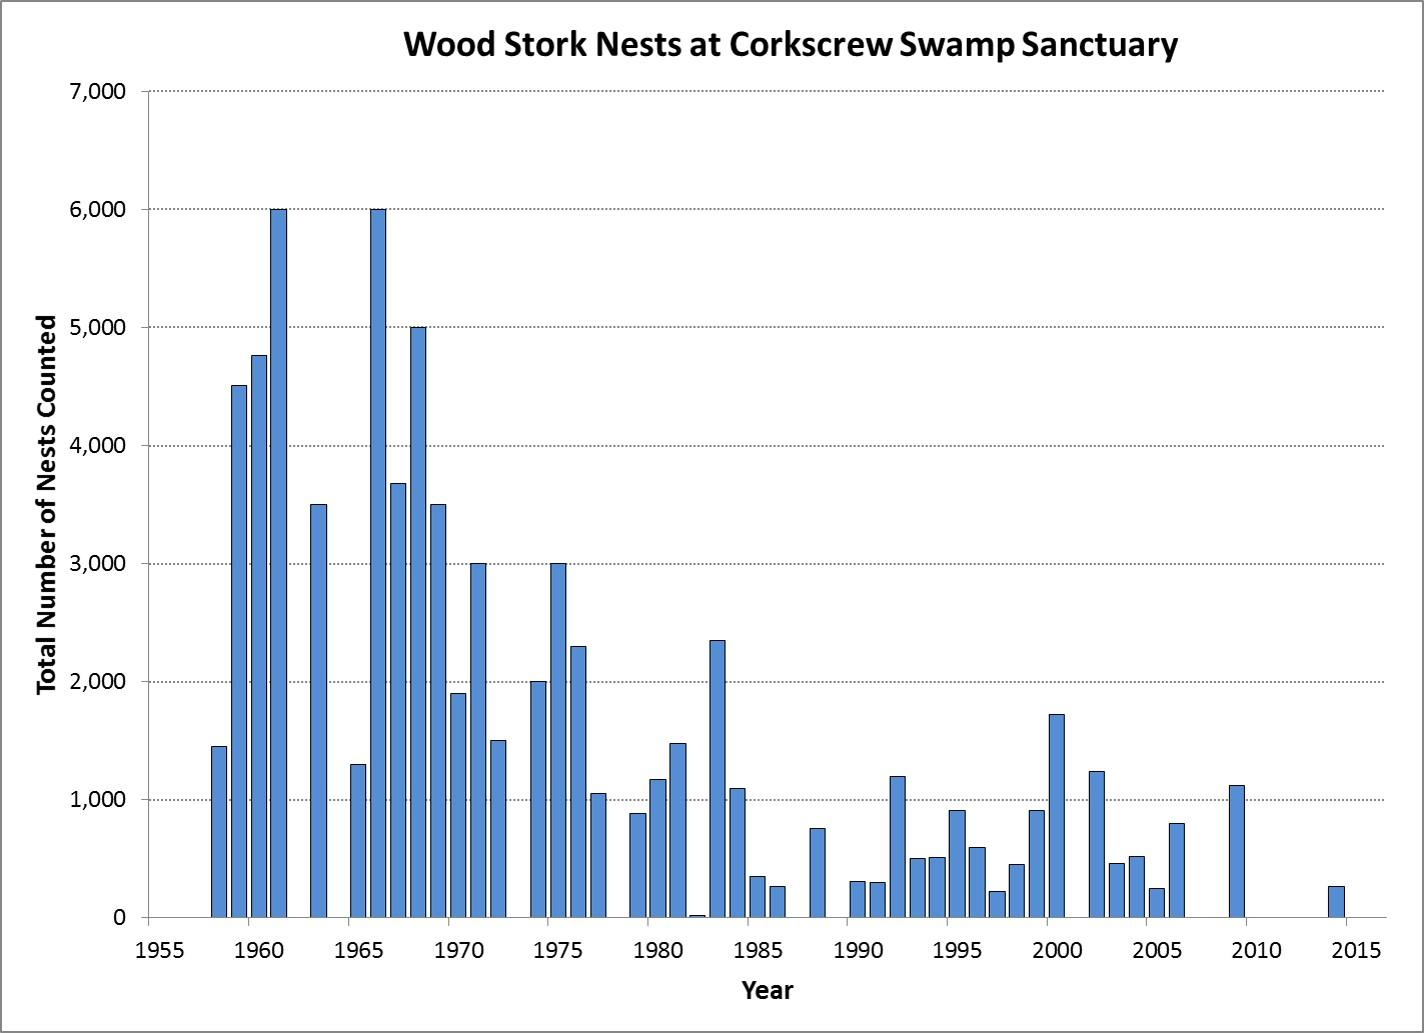 Graph of Wood Stork nesting effort at Corkscrew Swamp Sanctuary